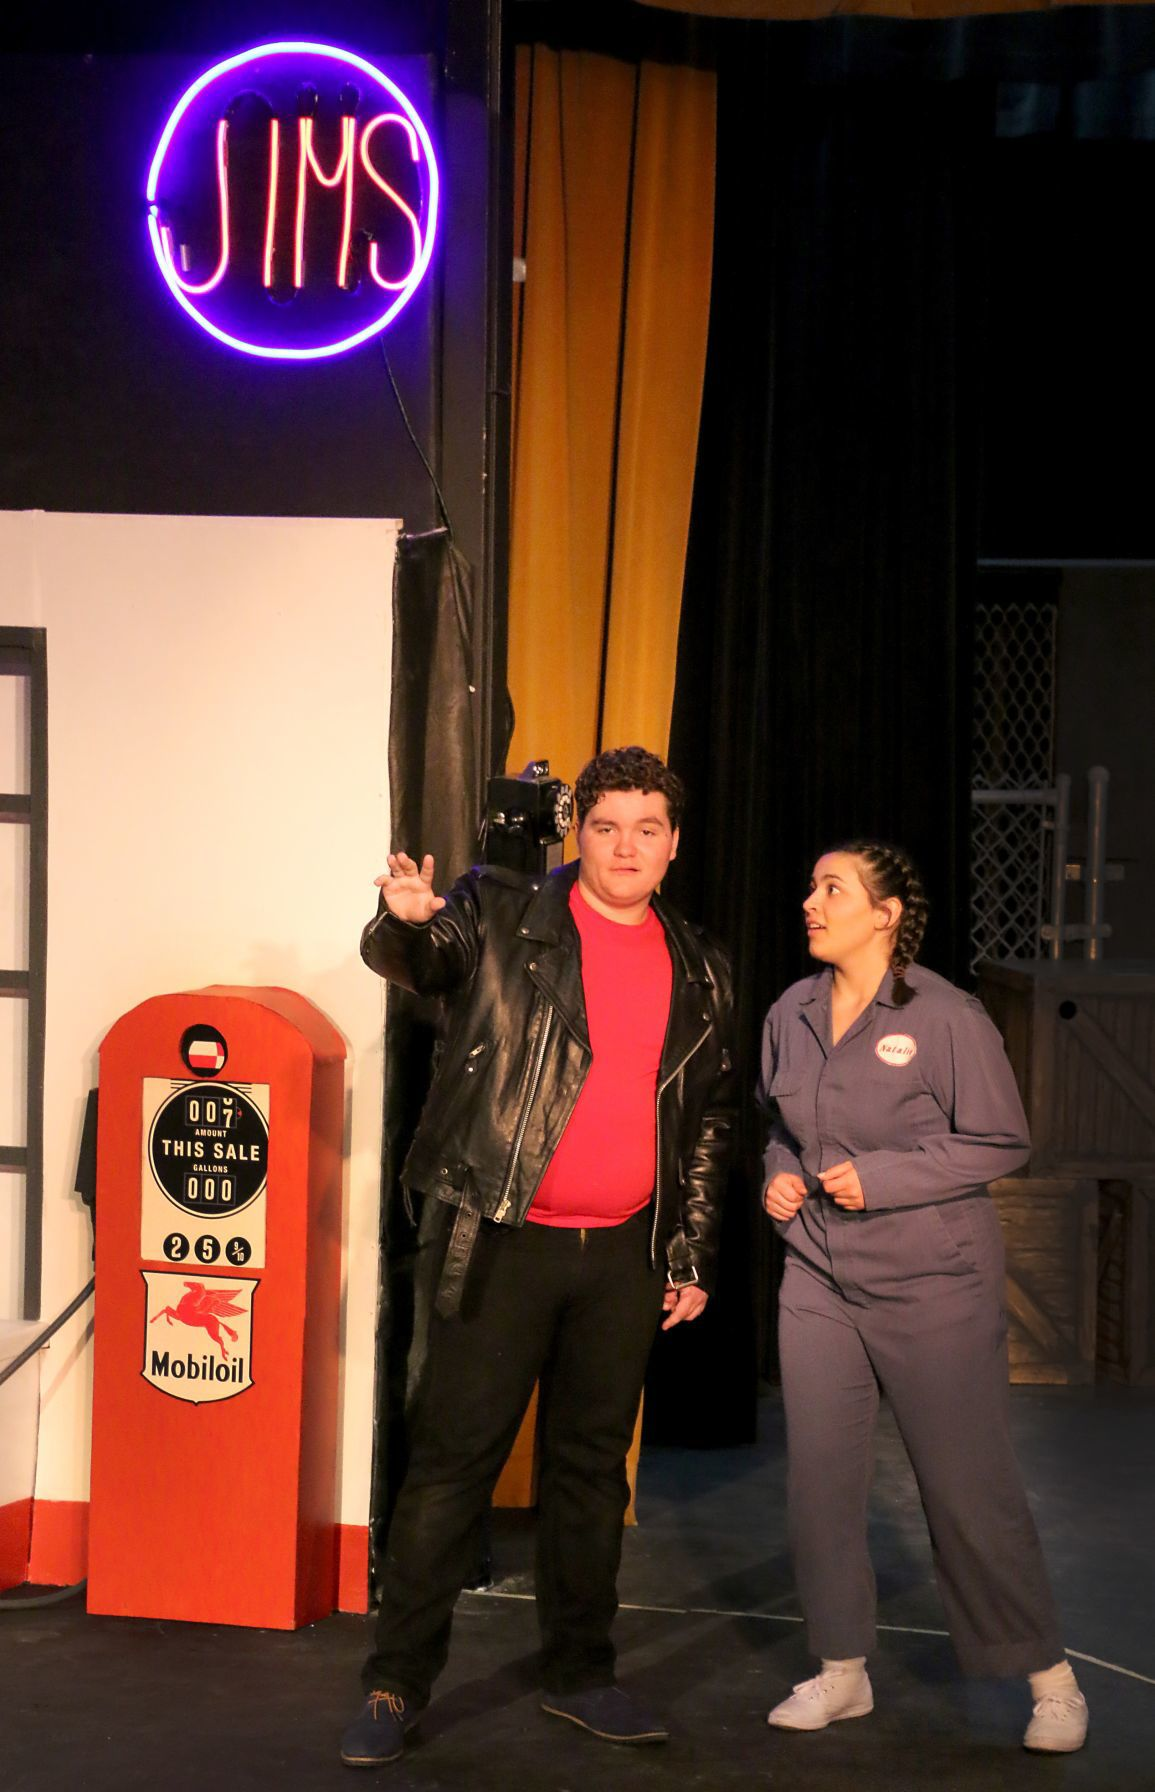 CHS All Shook Up 02